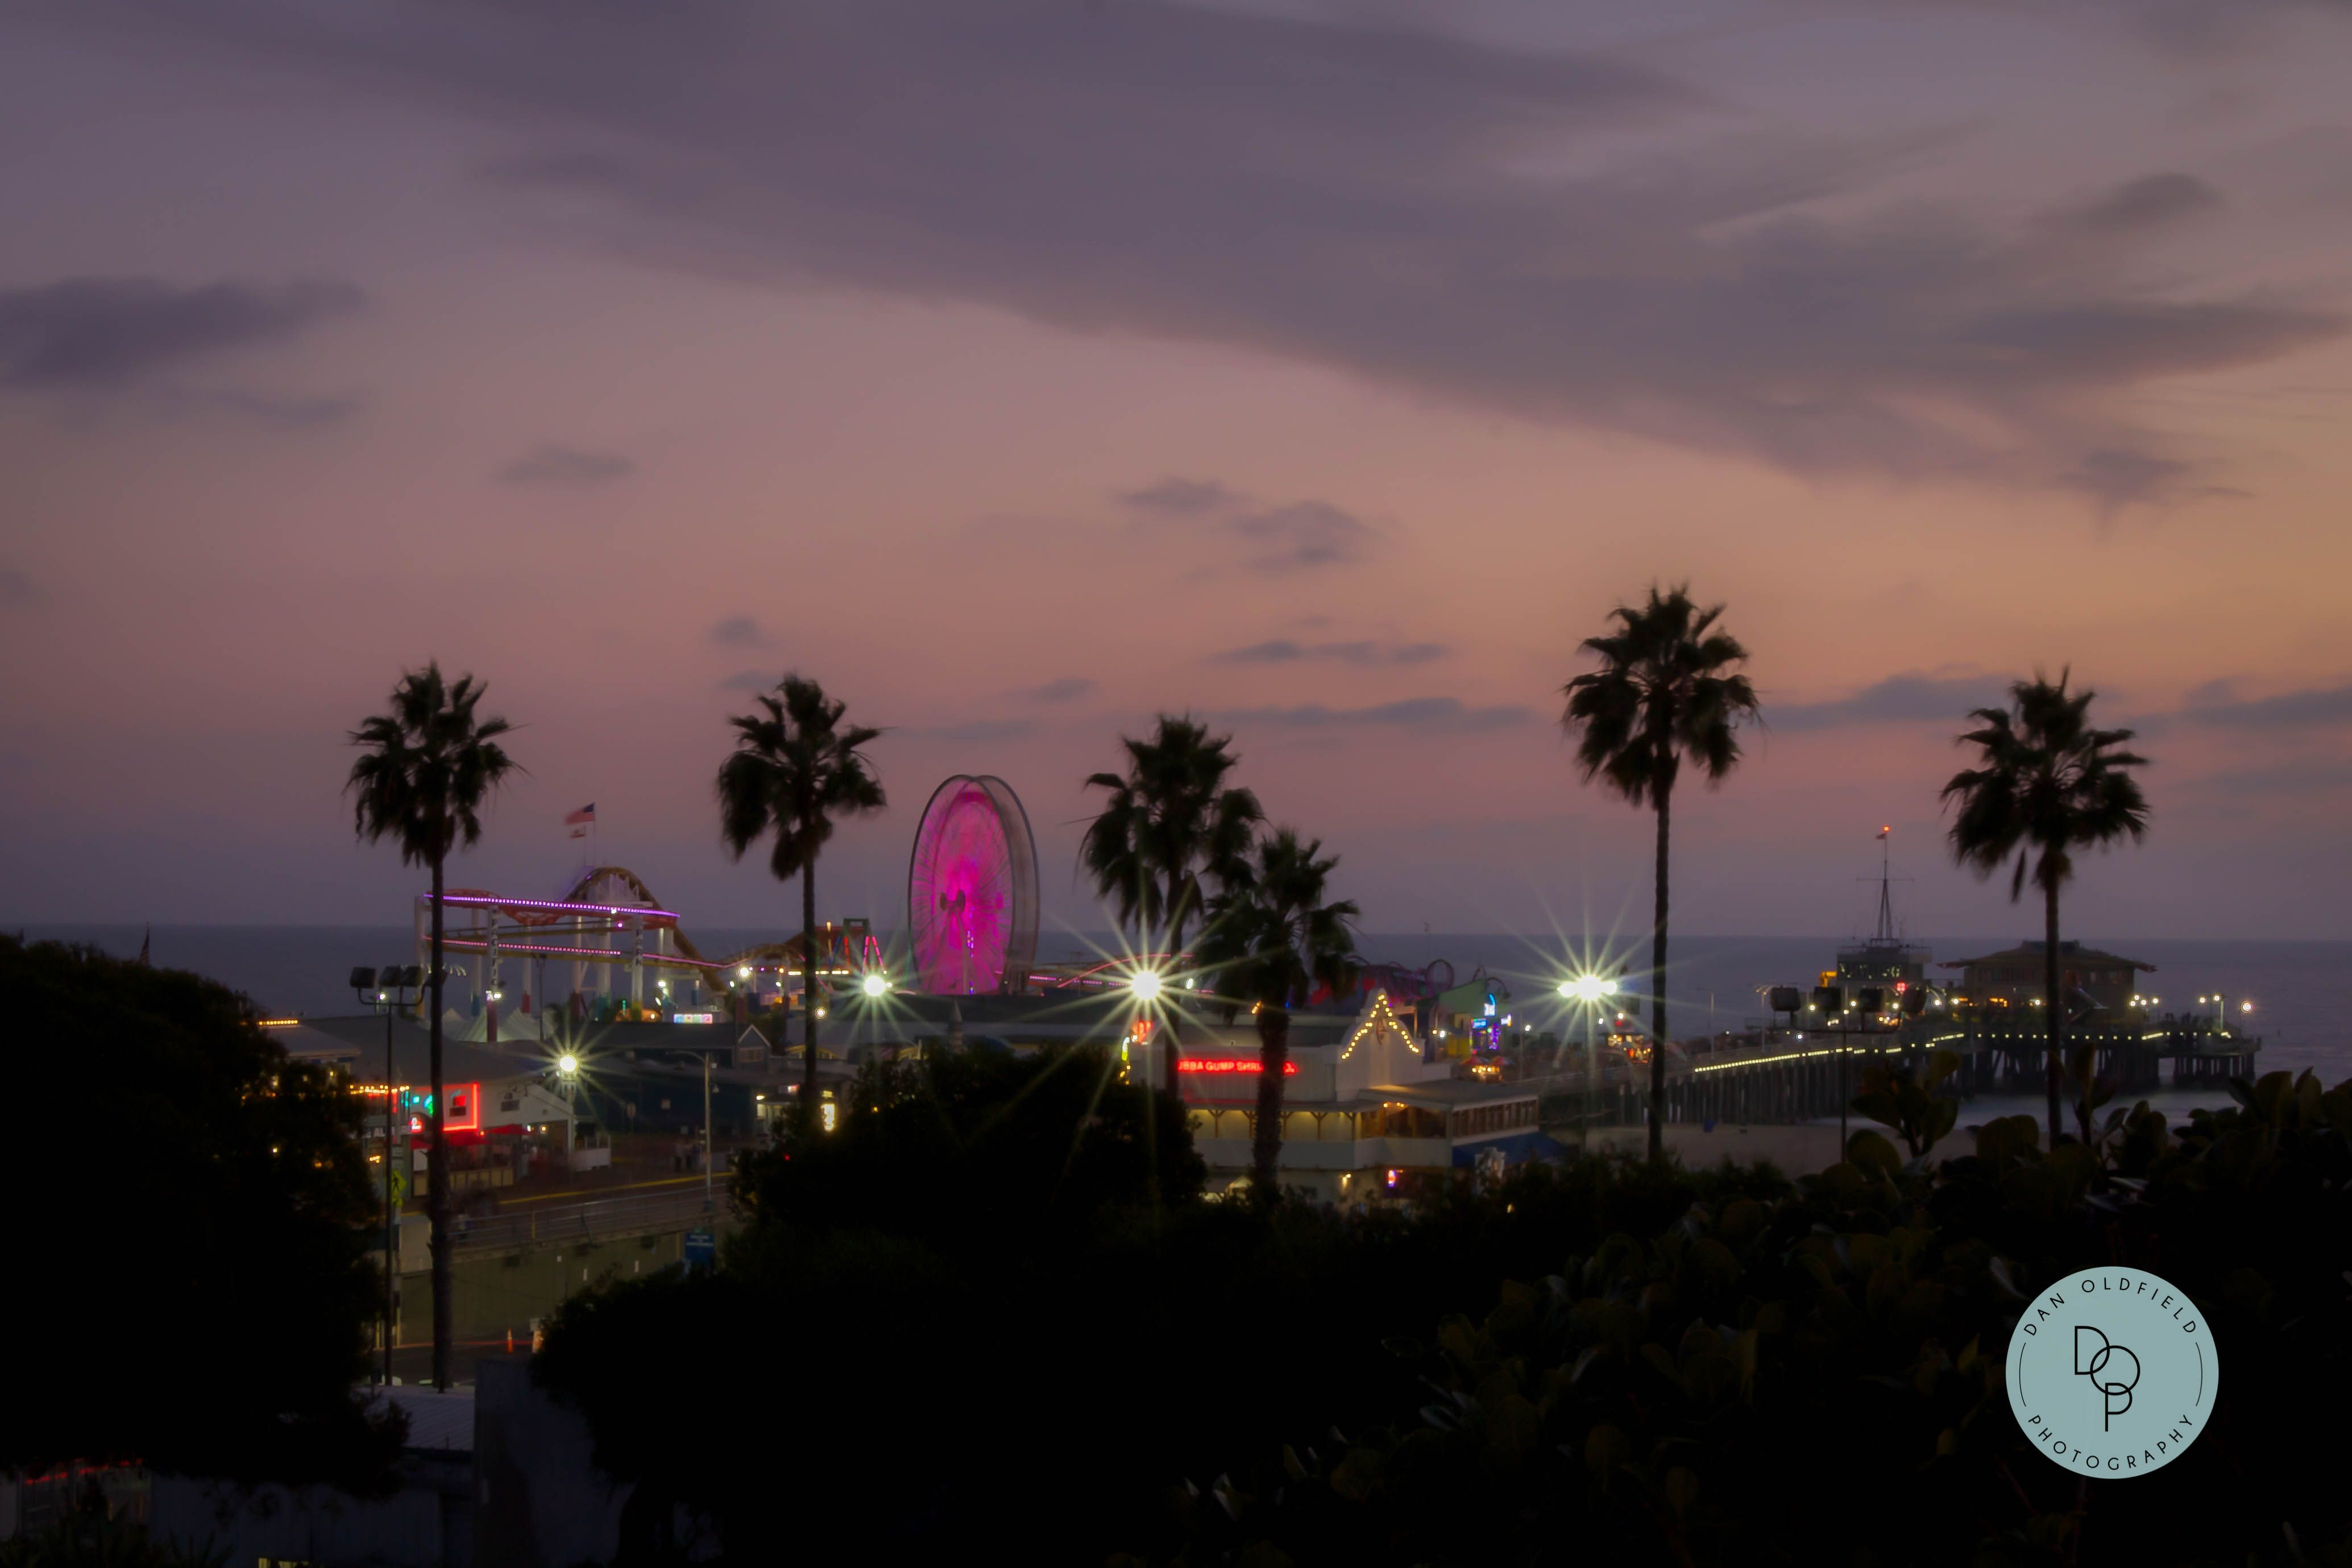 Santa Monica Pier at night is a beautiful site to see! #danoldfieldphotography #santamonica